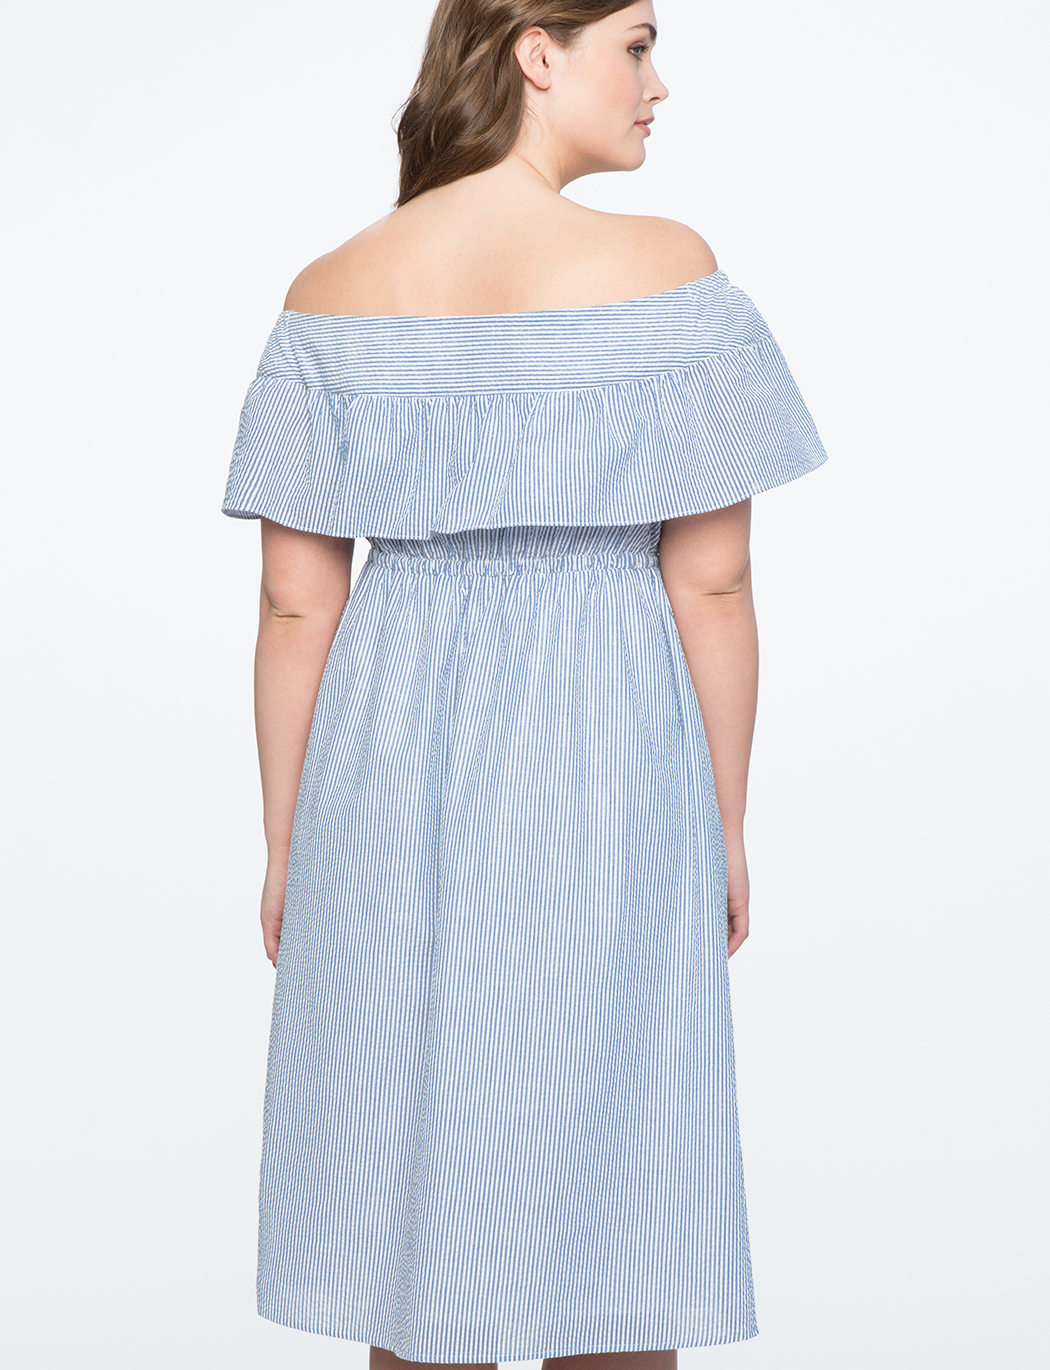 Off the Shoulder Dress with Ruffle Overlay